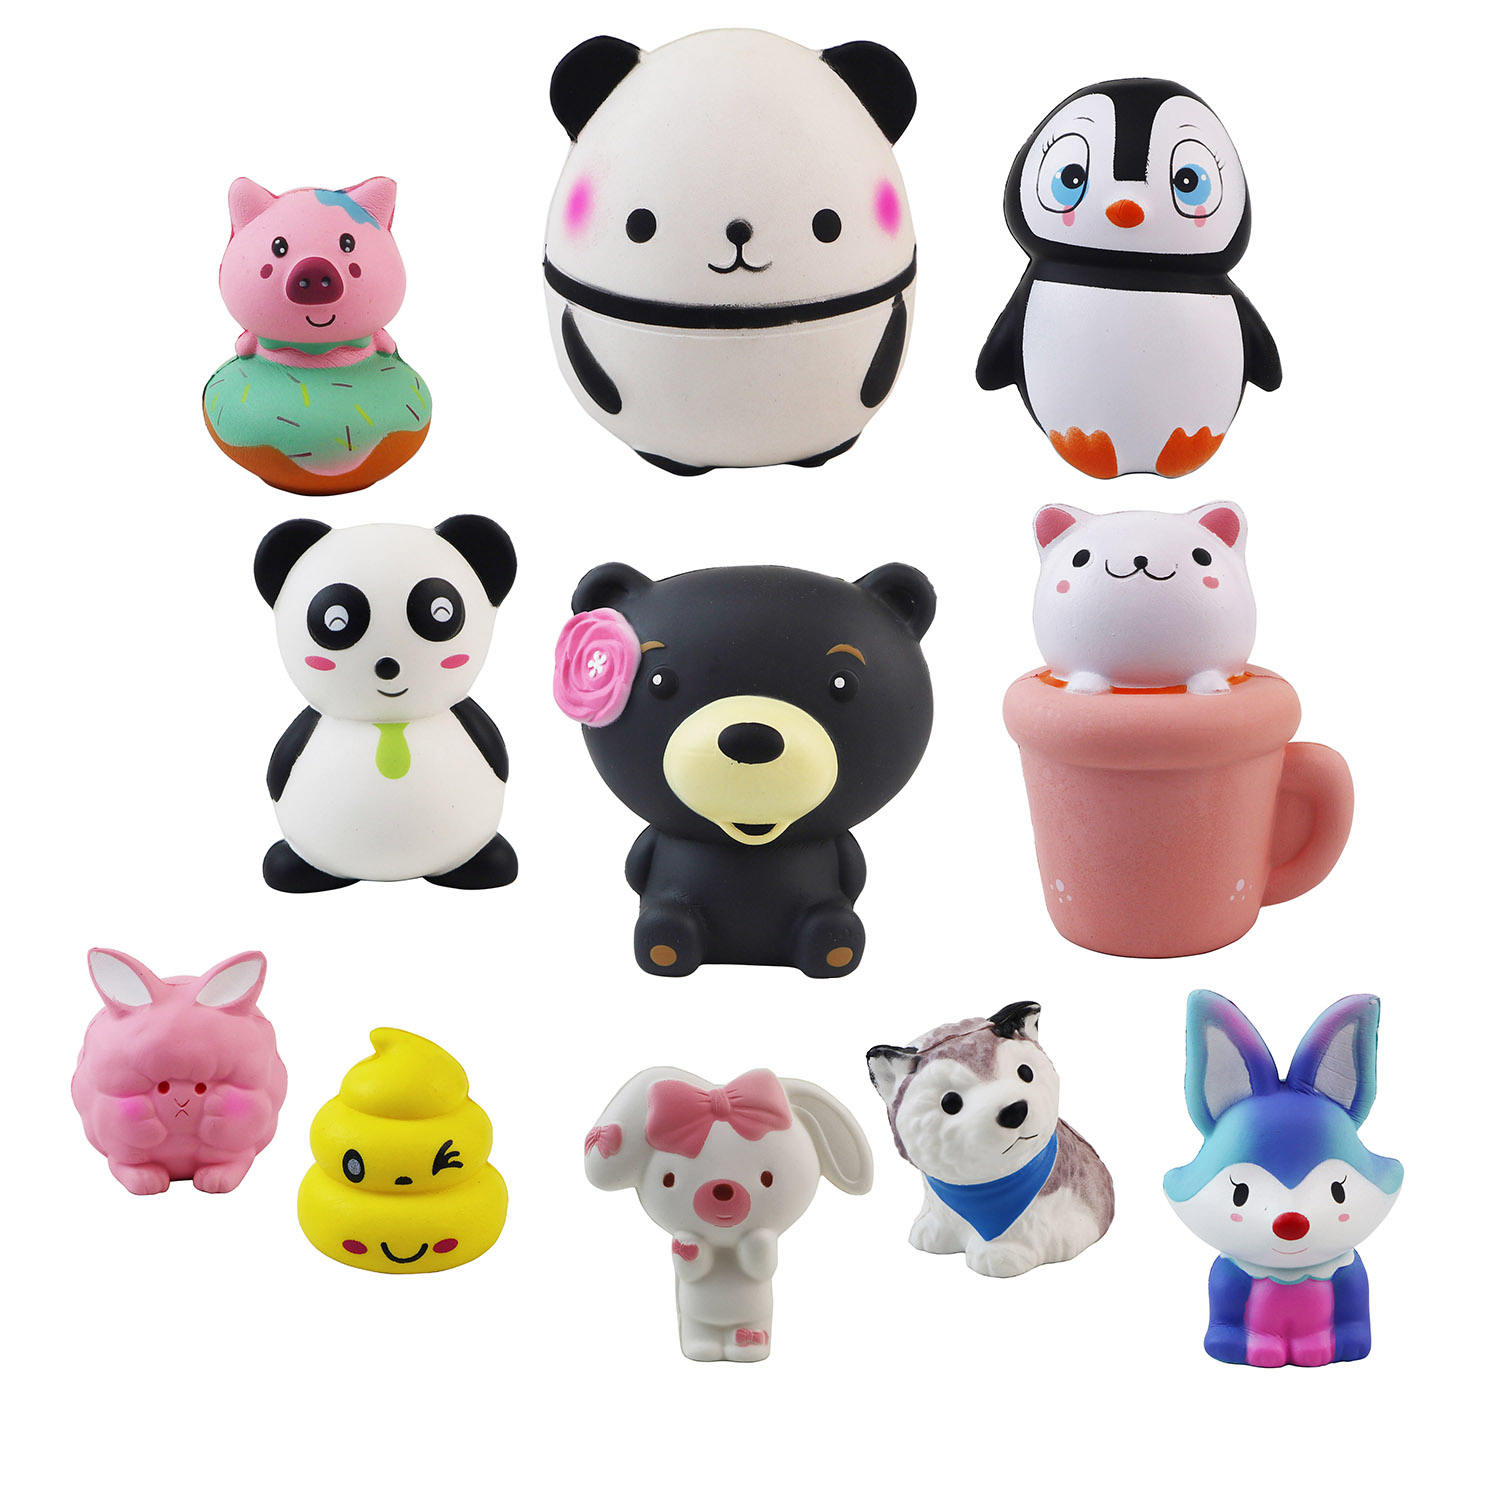 2020 New design galaxy series squishy toy slow rising jumbo colorful good cartoon panda penguin cat cup squishy other toys